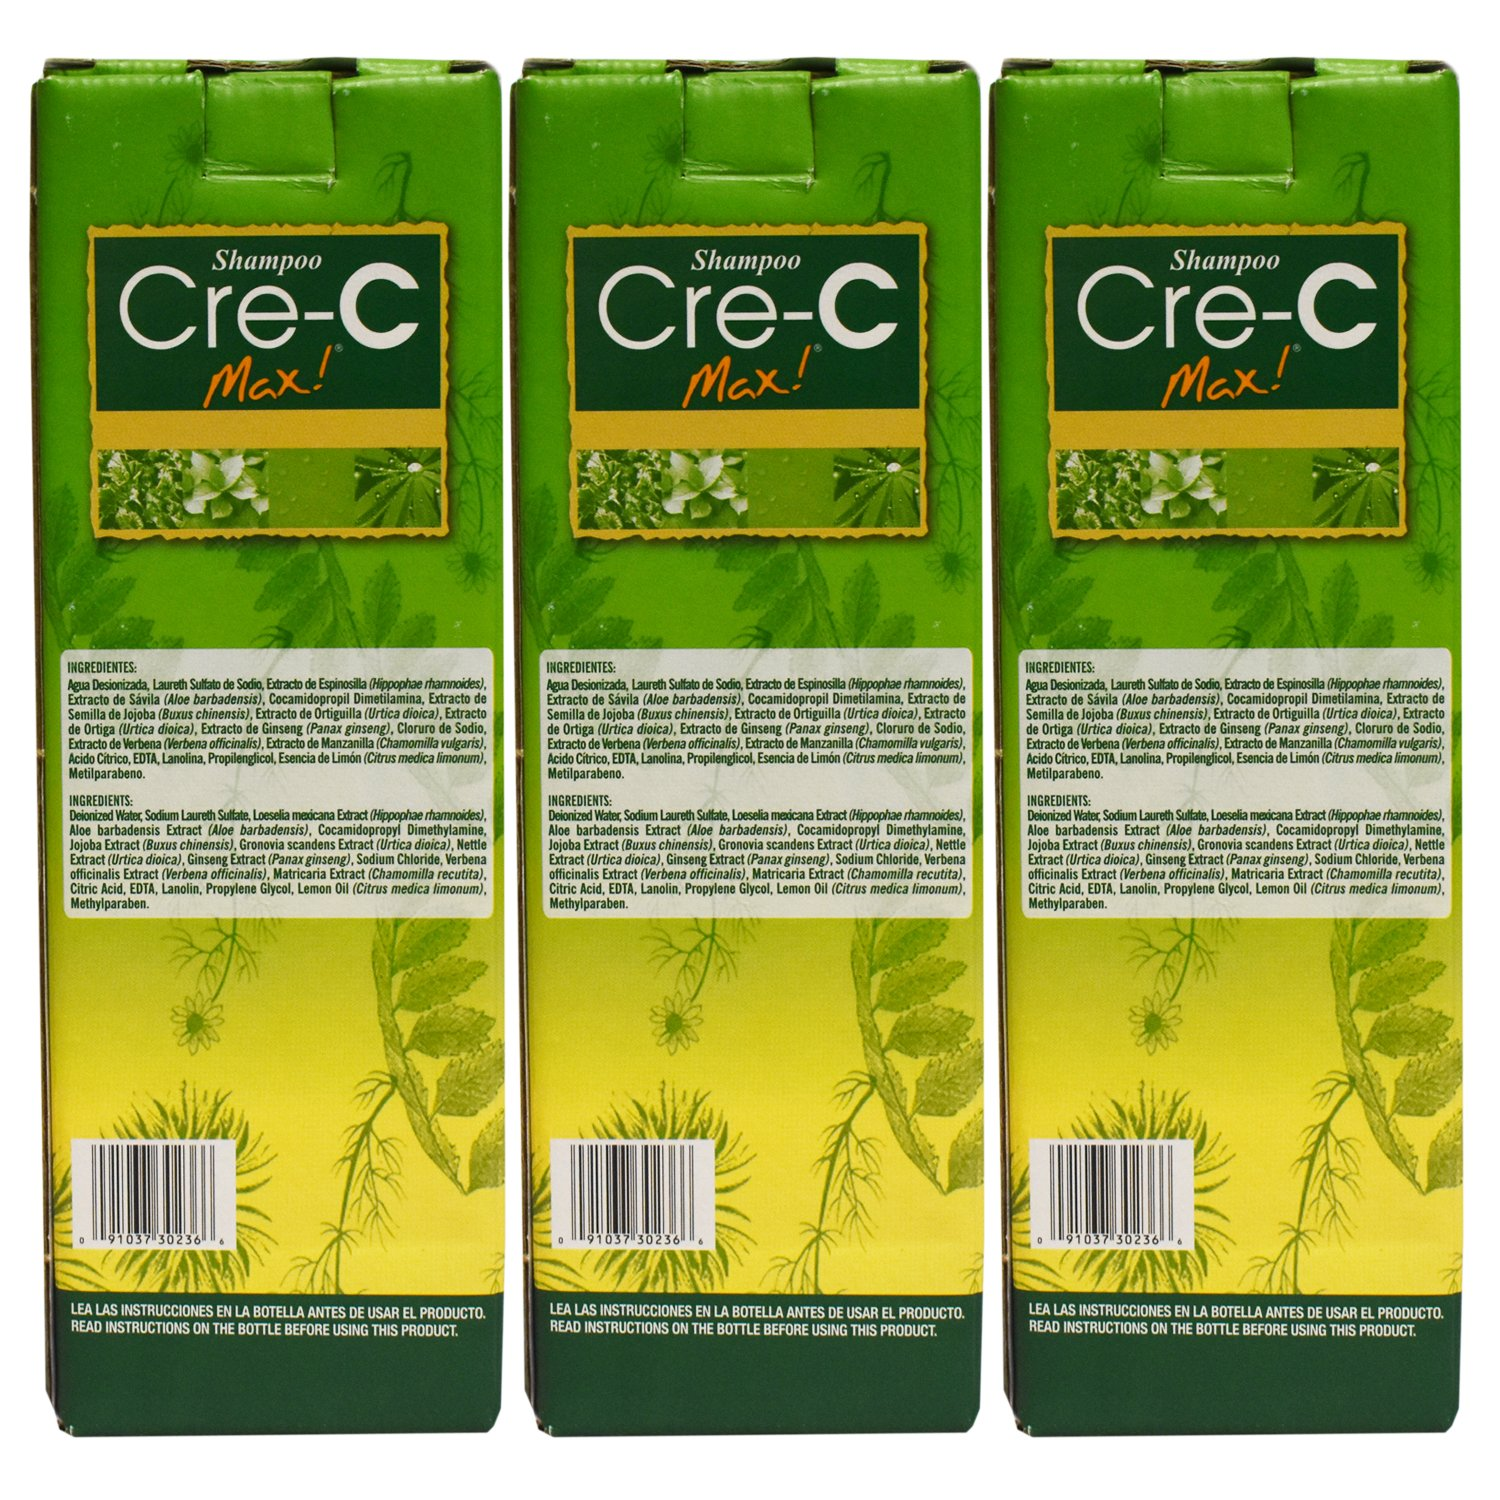 Shampoo Cre-C (3 pack) 8.45 oz by Cre-C (Image #2)